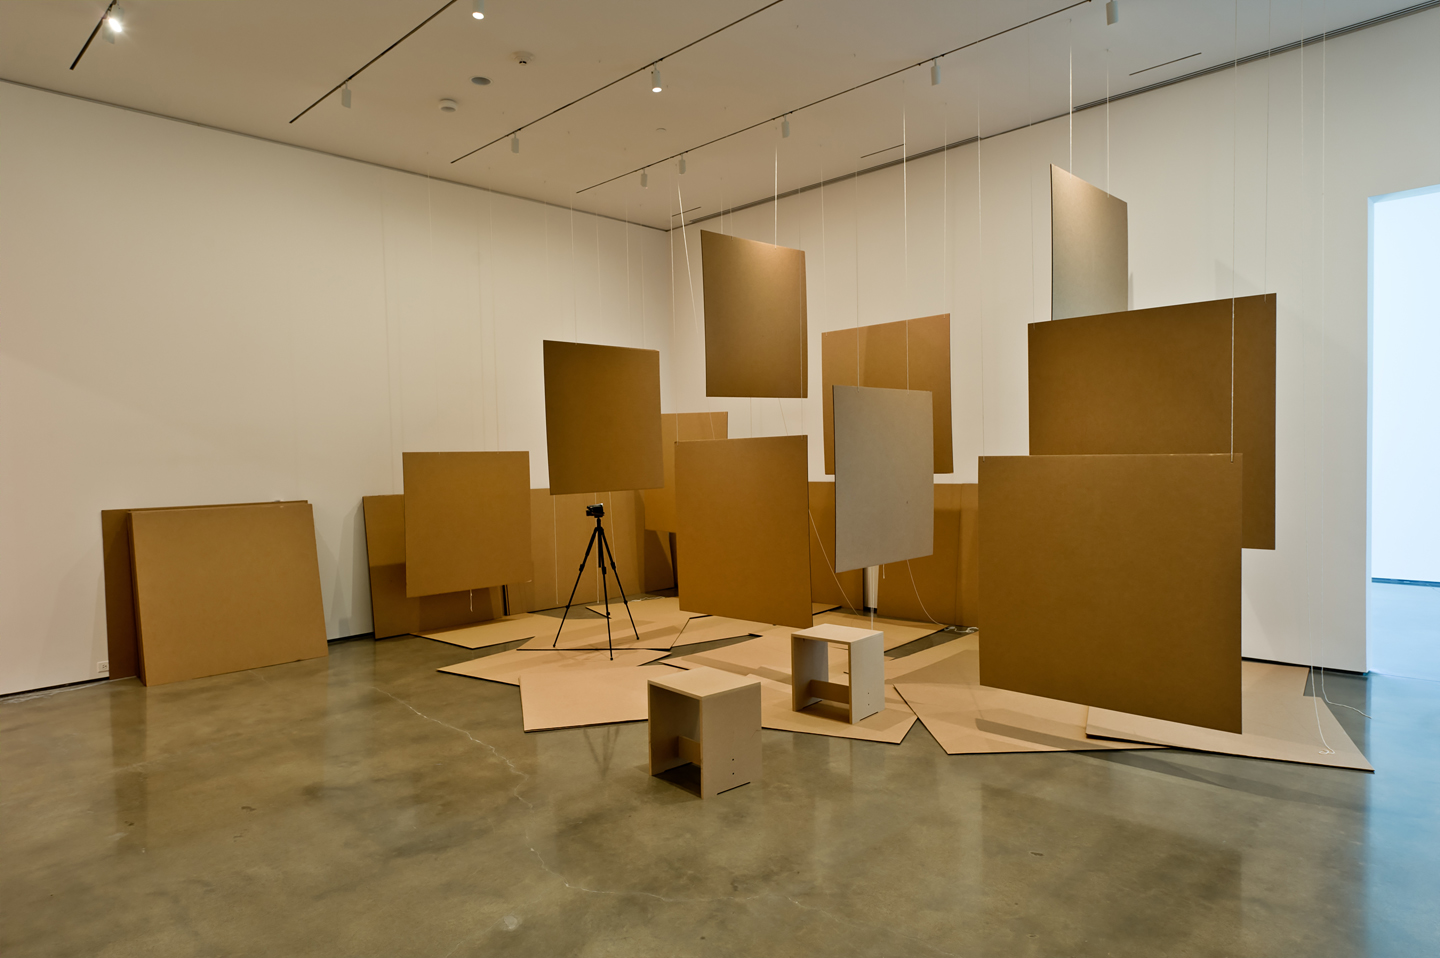 Liam Gillick, McNamara Papers: Towards a Documentary, 1997, installation view at CCS Bard, New York, 2012. Courtesy: the artist